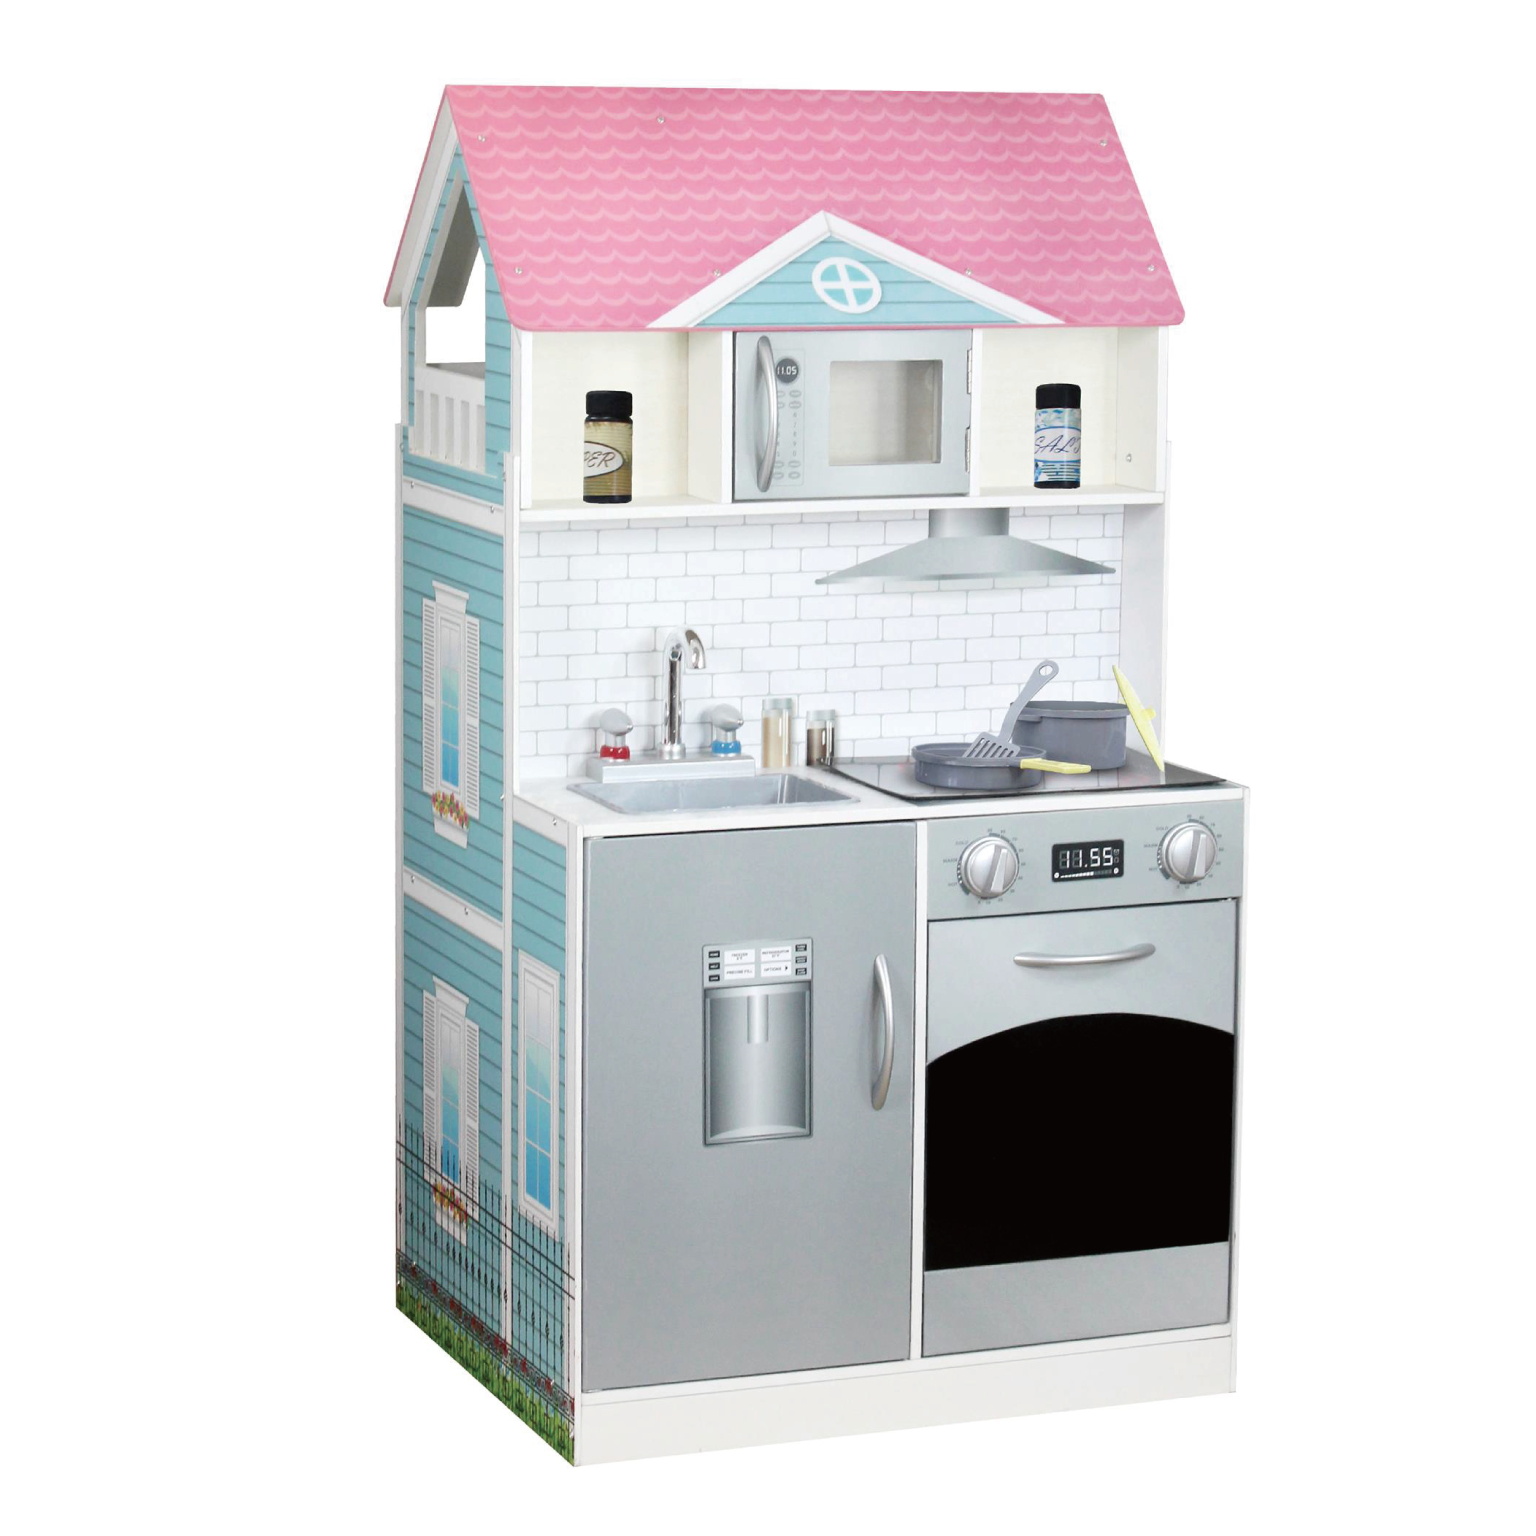 Teamson Kids Wonderland Ariel 2 in 1 Doll House & Play Kitchen - Muti-color